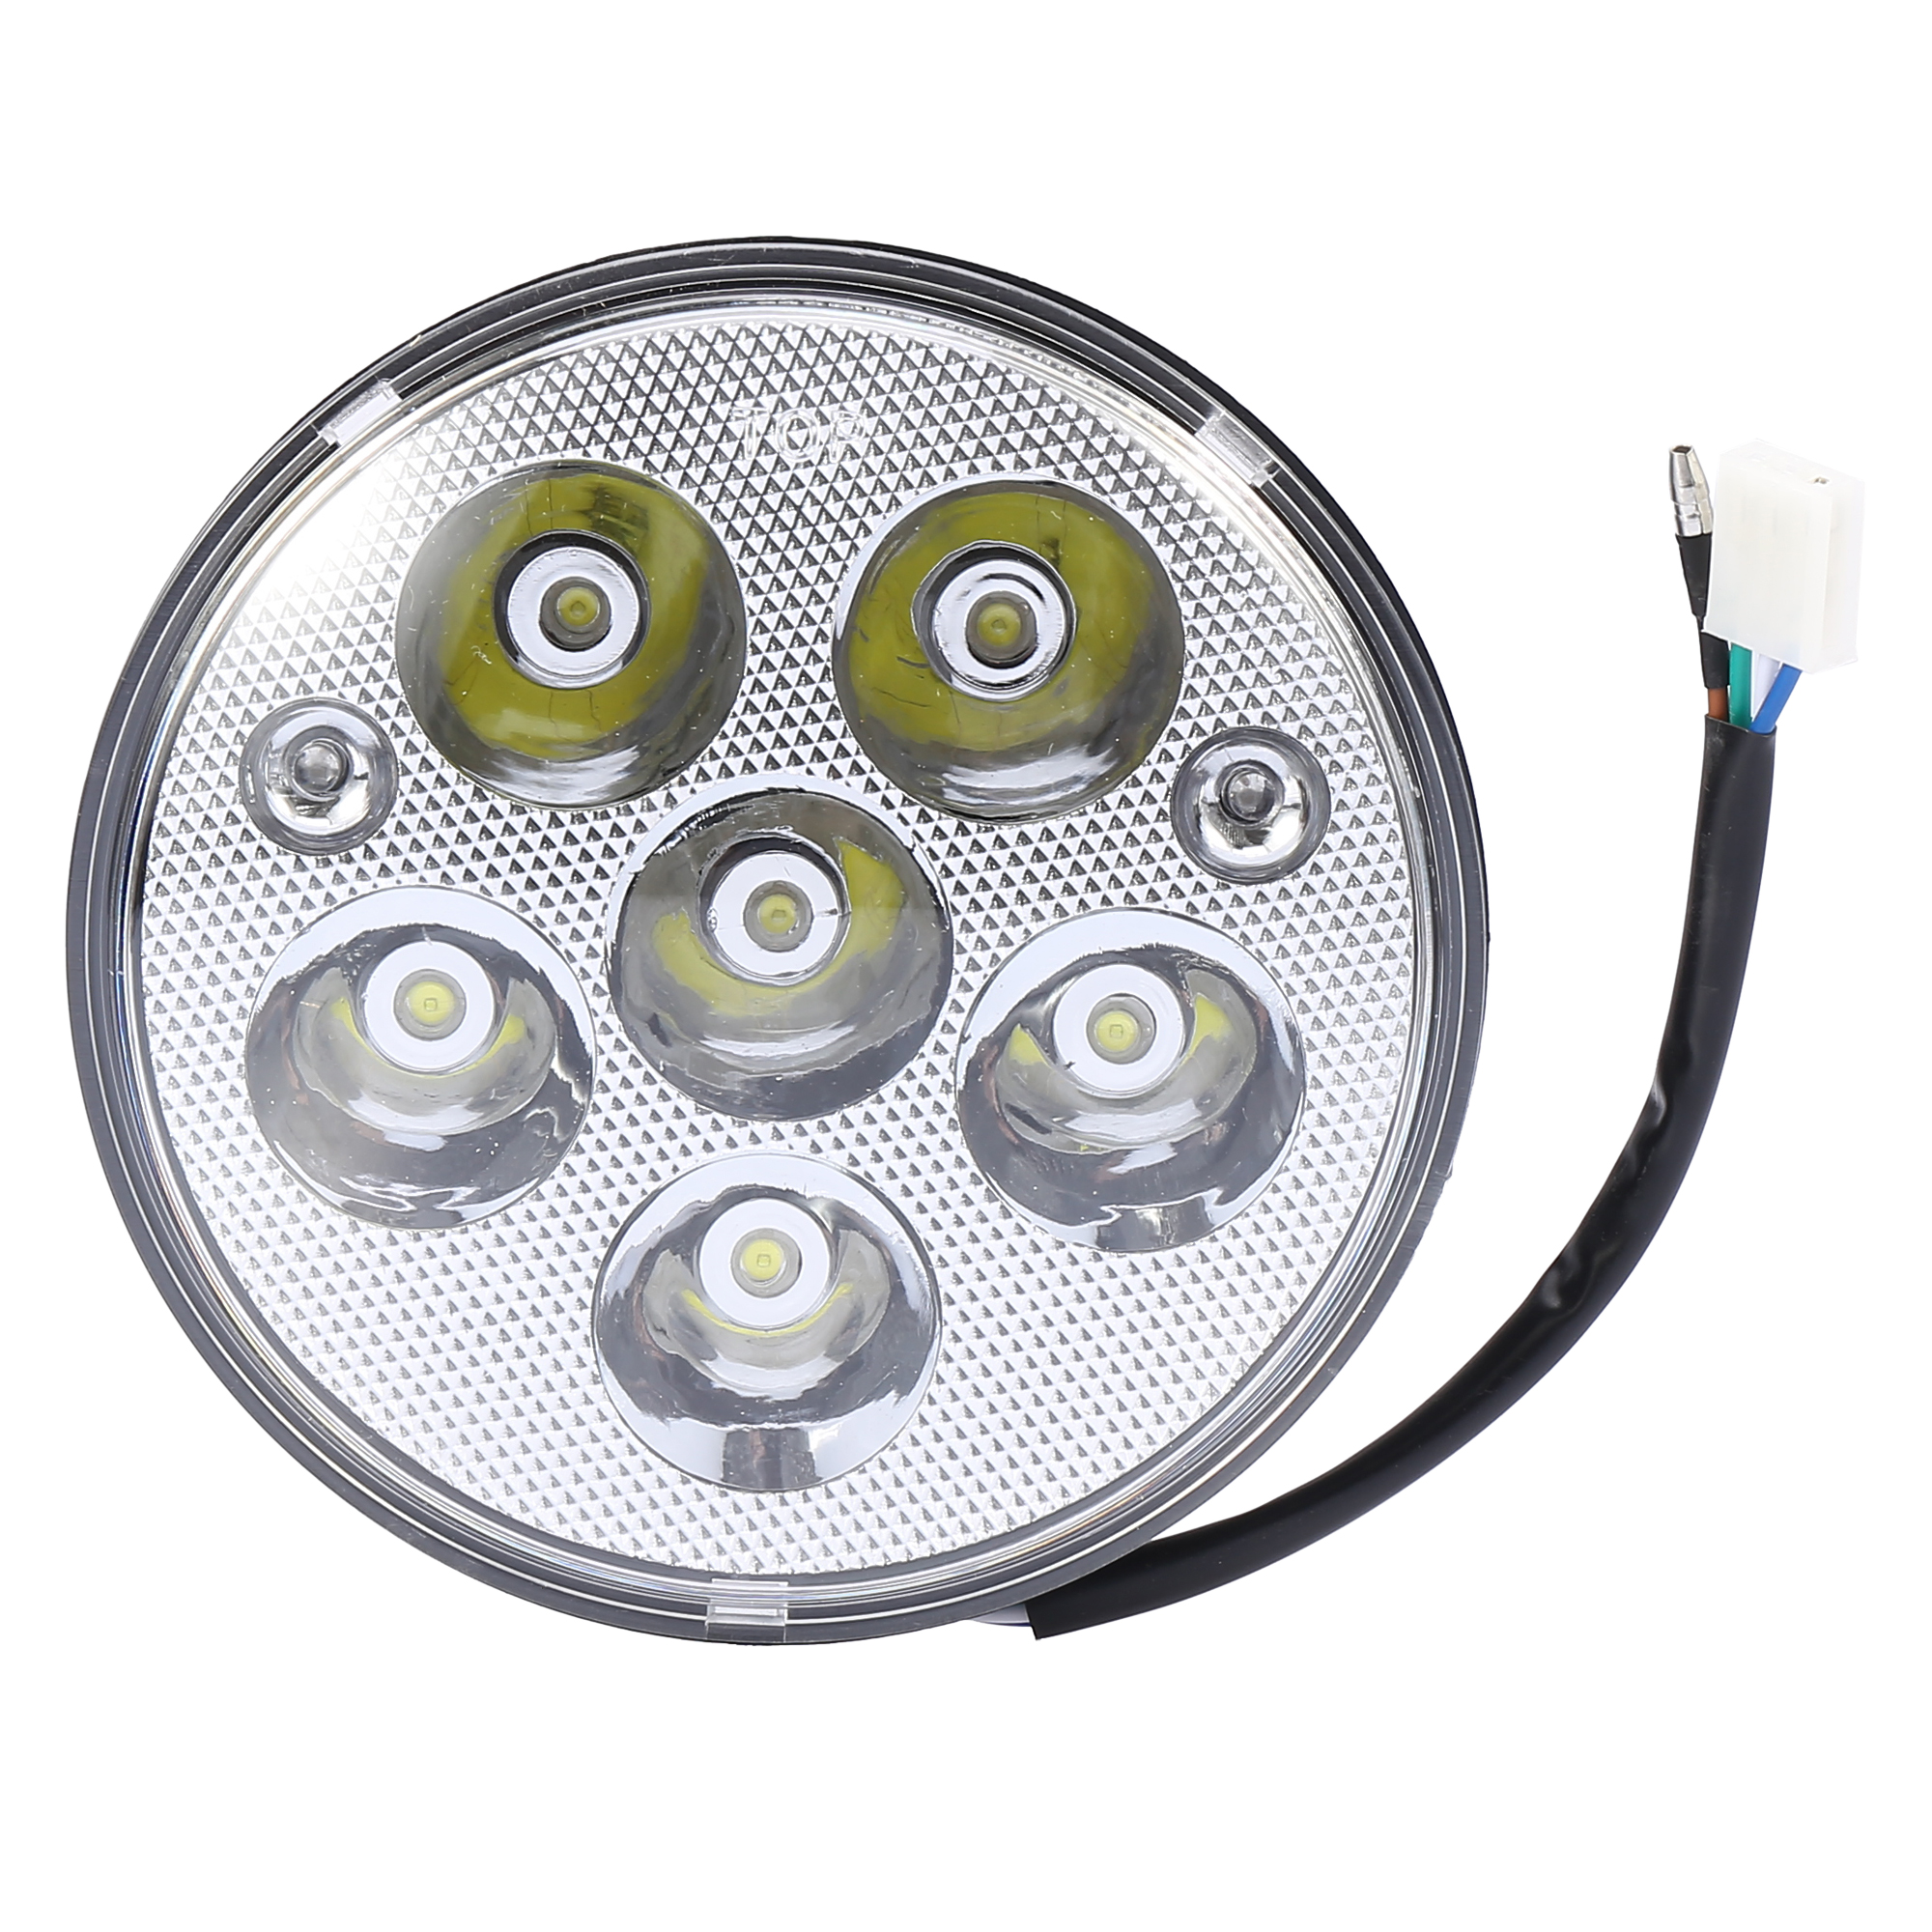 5.5 Inch Motorcycle Front Indicator Round White 6 LED Head Light Fog Lamp